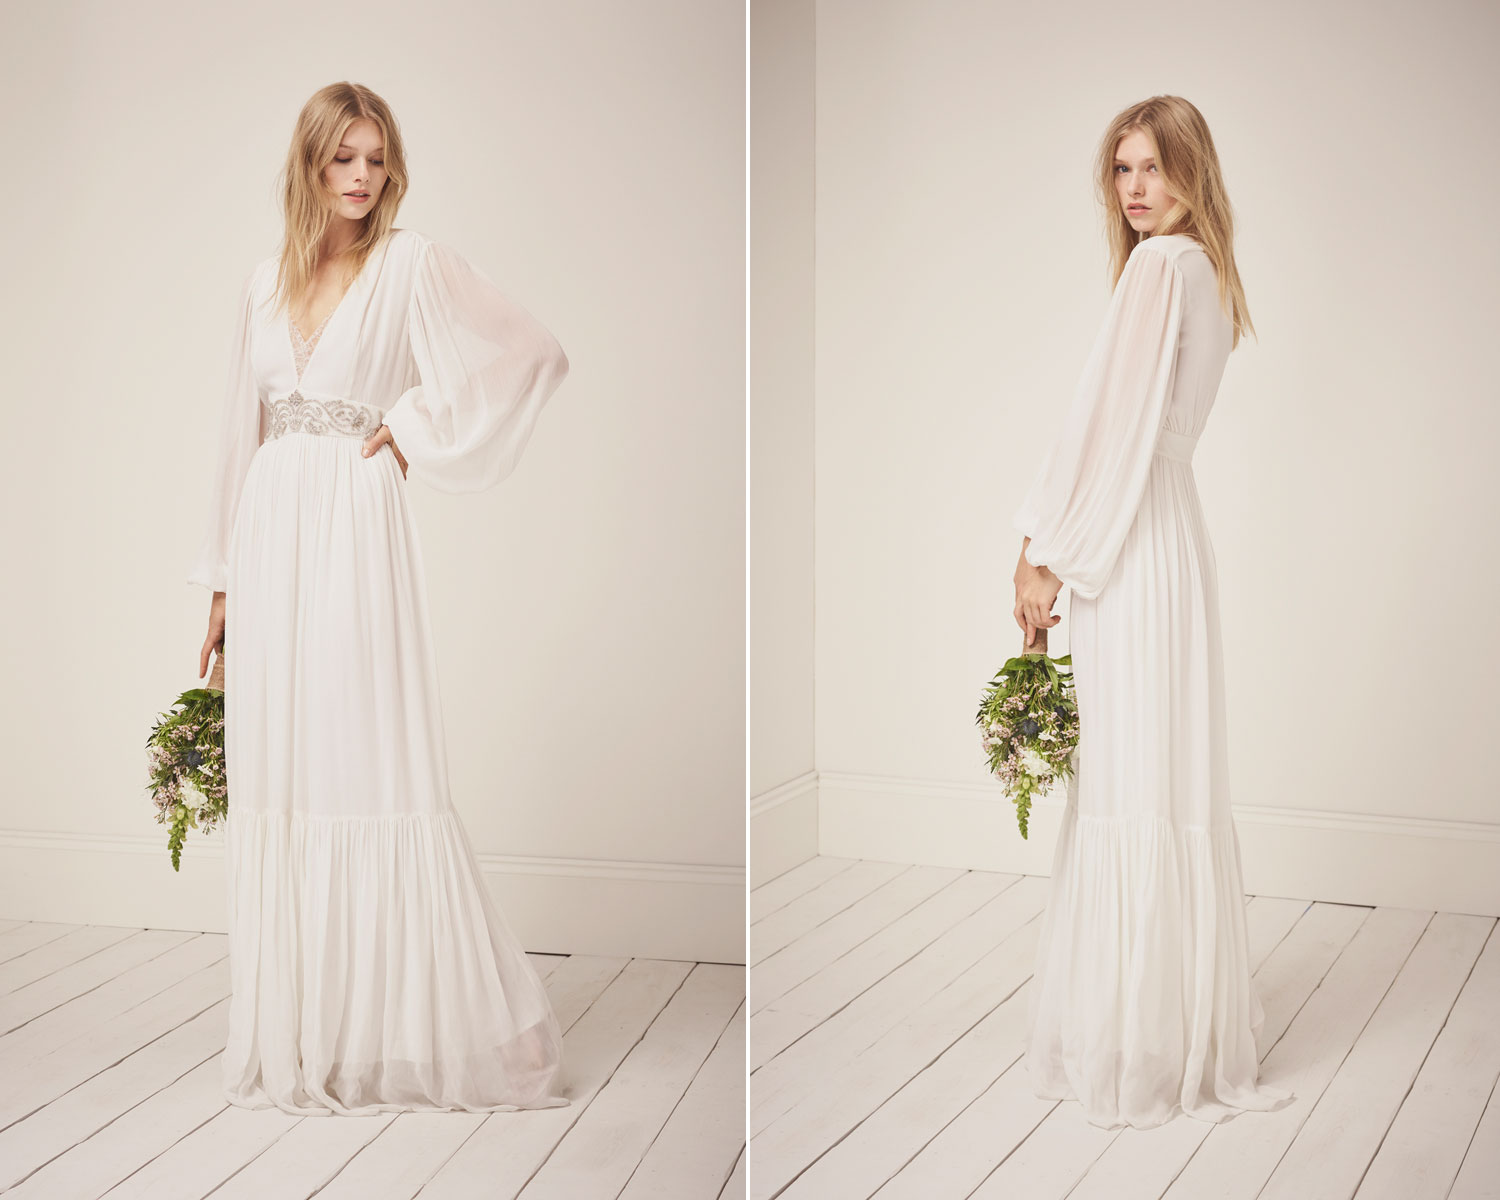 Wedding Dresses Under 500: French Connection's Bridal Collection Just Dropped And It